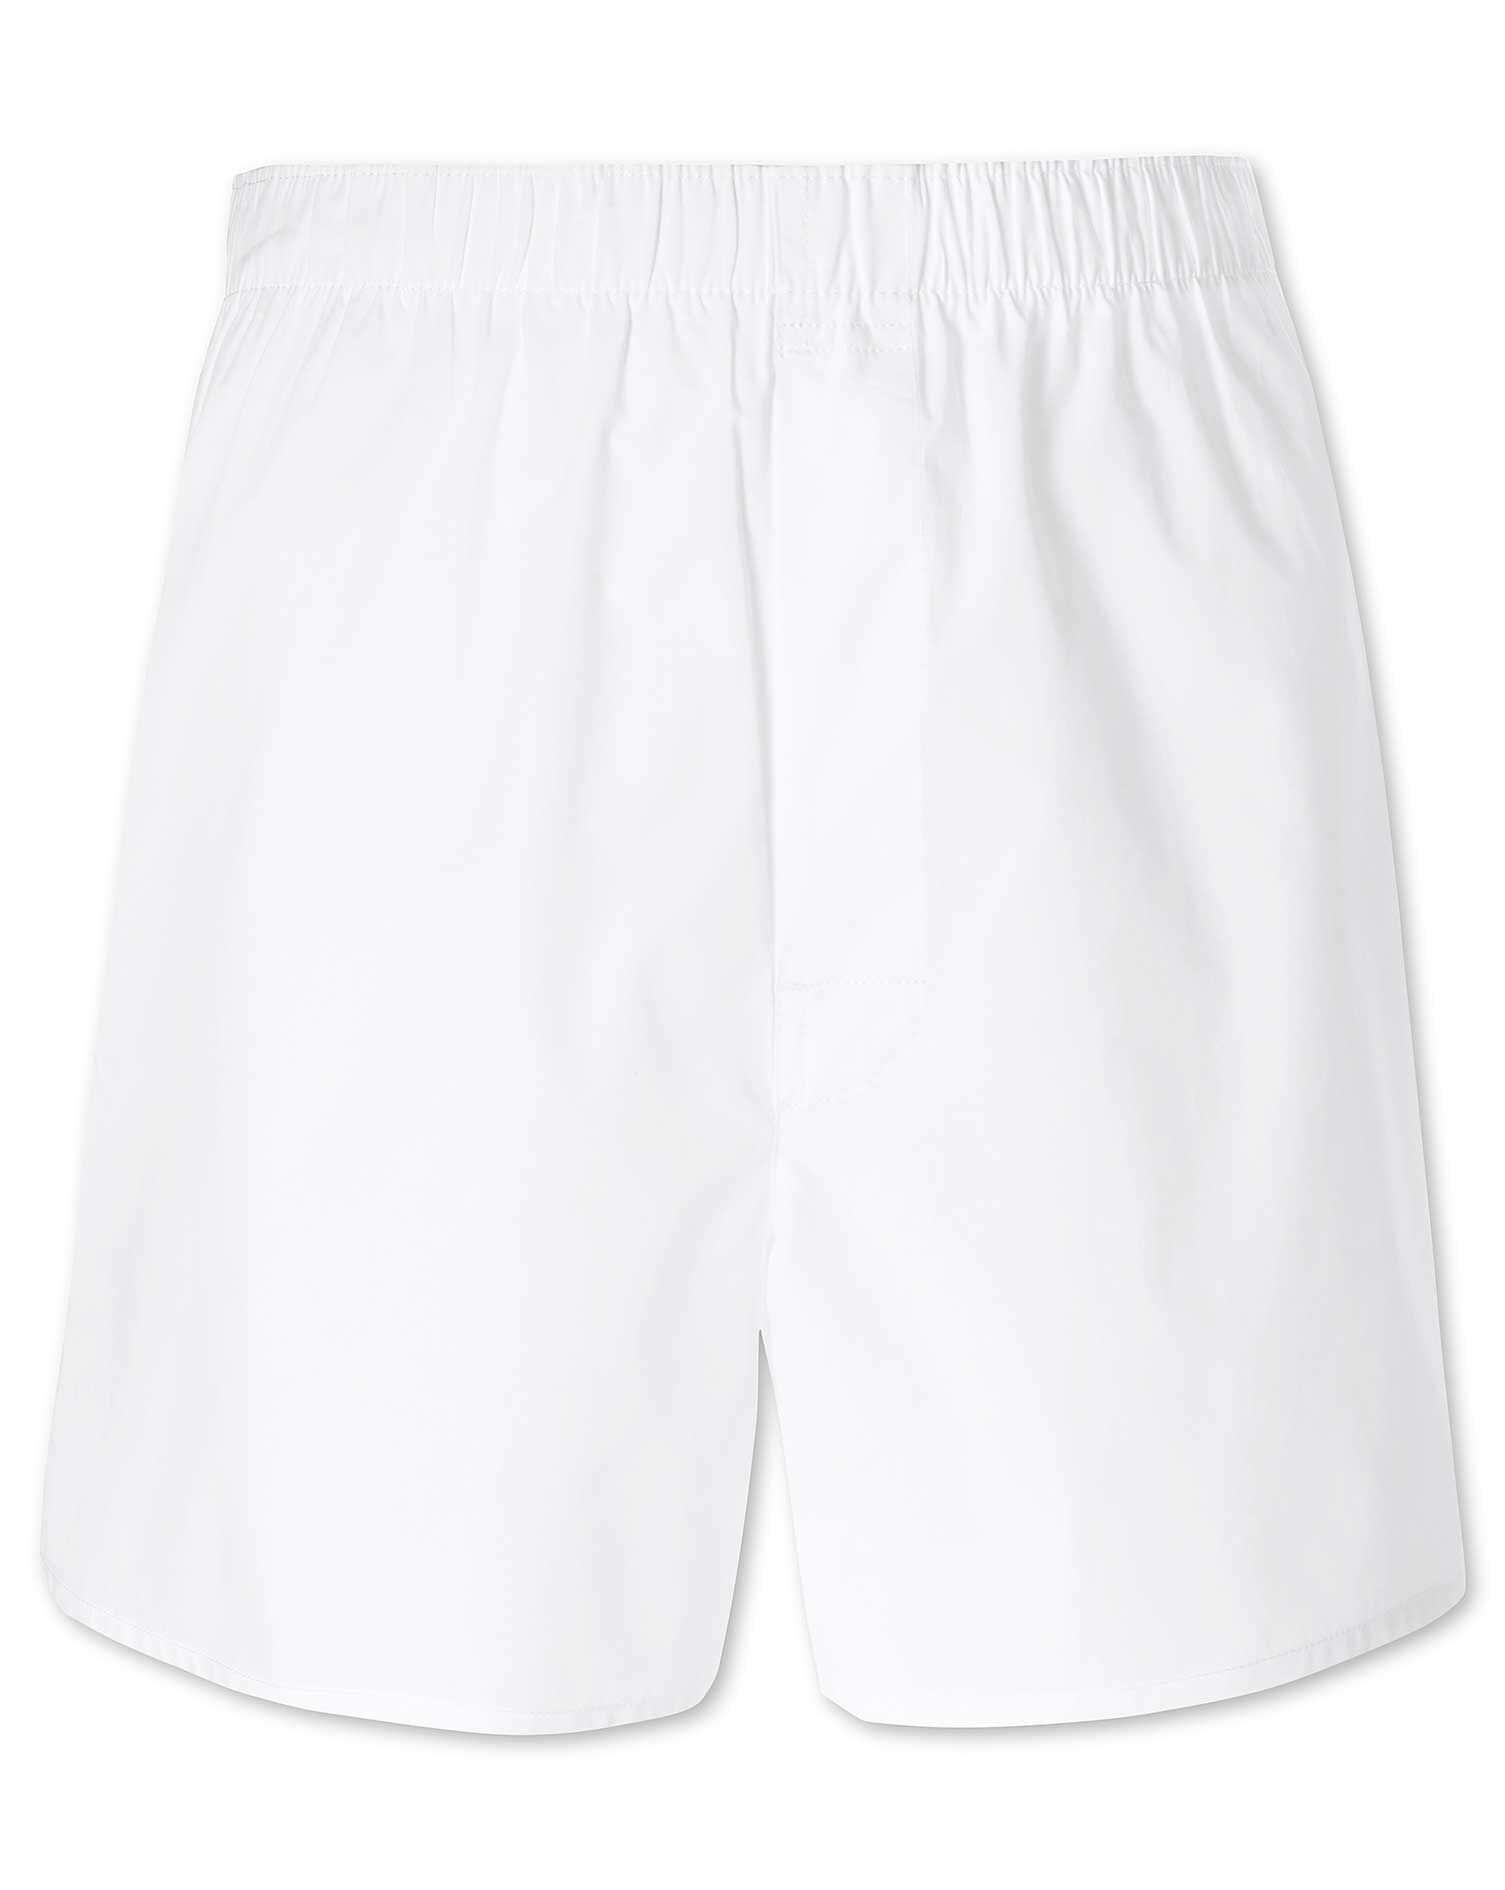 White Woven Boxers Size Small by Charles Tyrwhitt